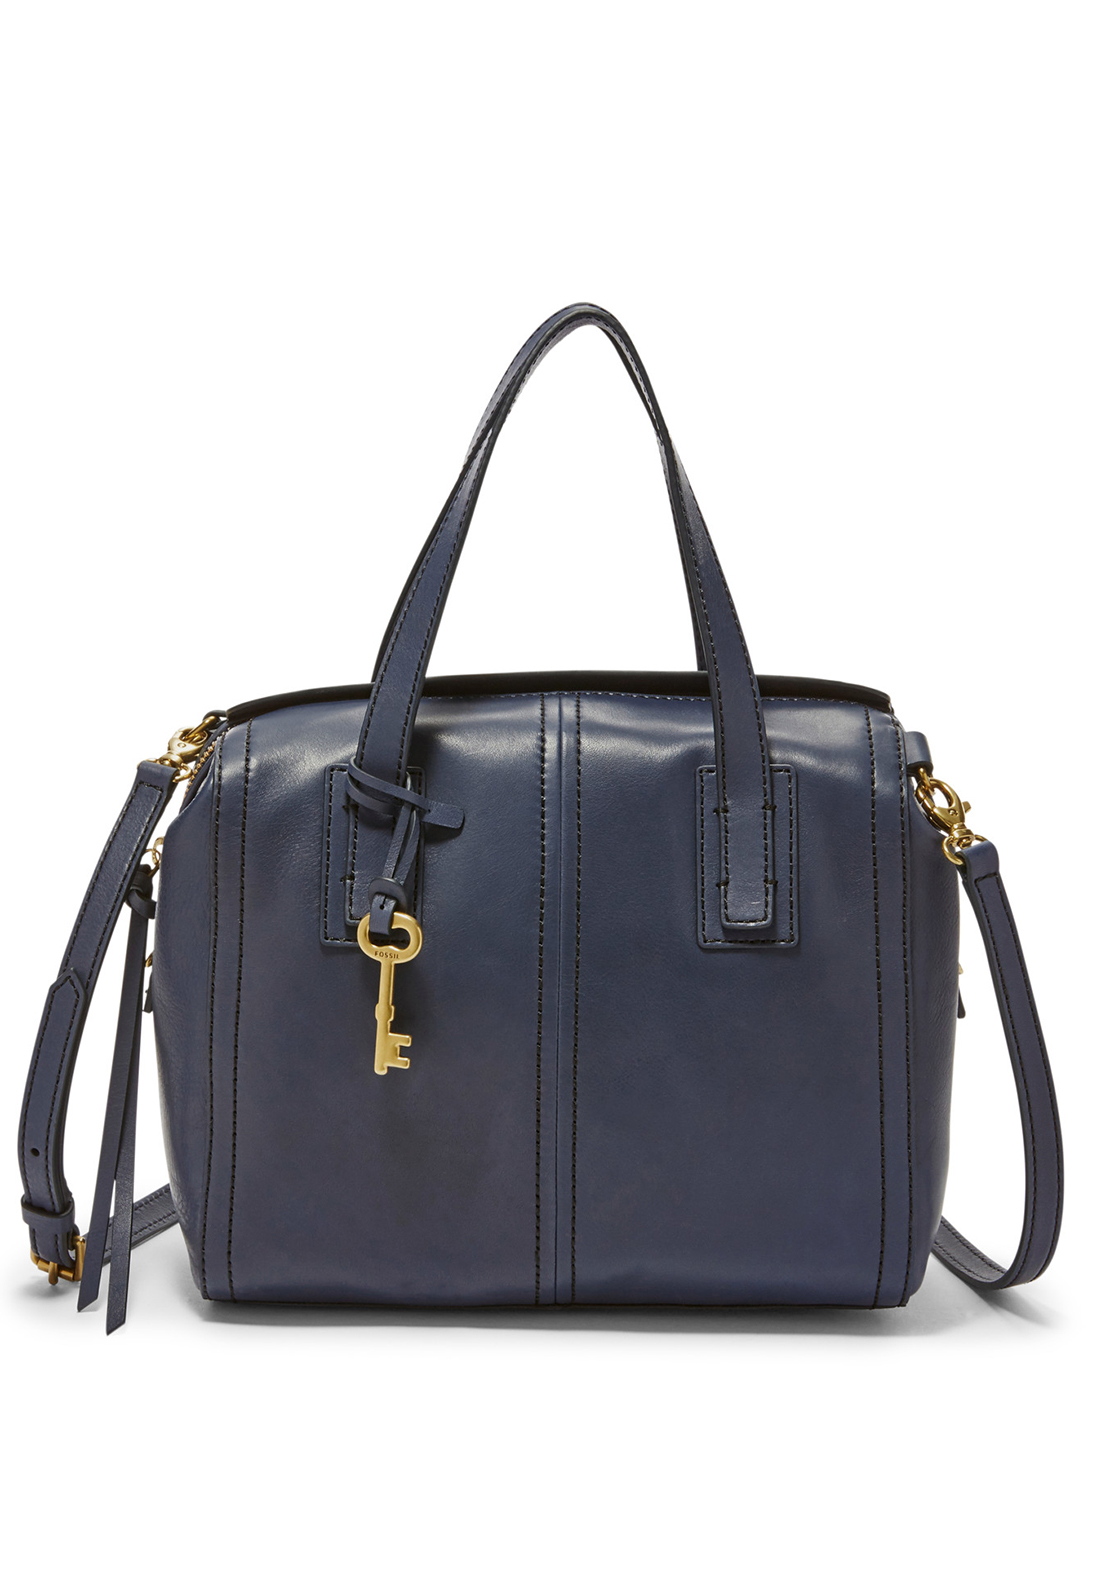 Fossil Emma Leather Satchel Grab Bag, Midnight Navy